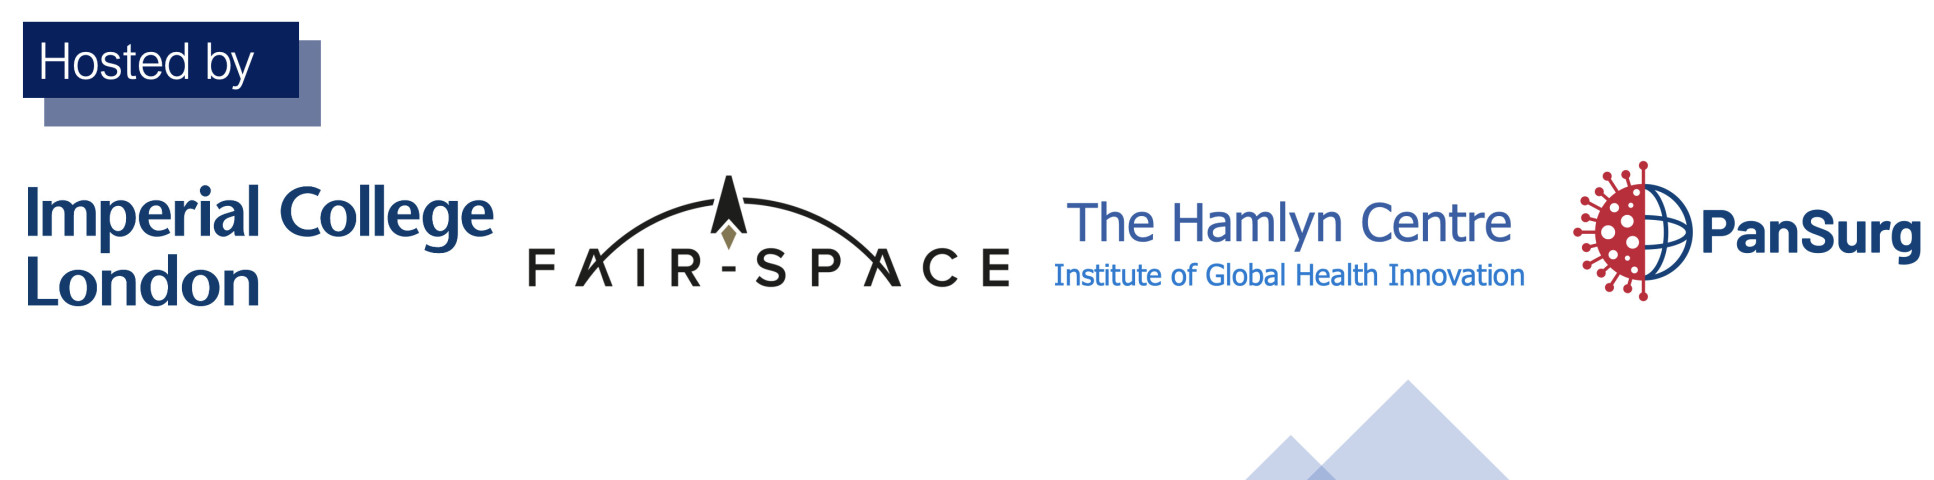 Hosted by Imperial College London, FAIR-SPACE, the Hamlyn Centre & PanSurg